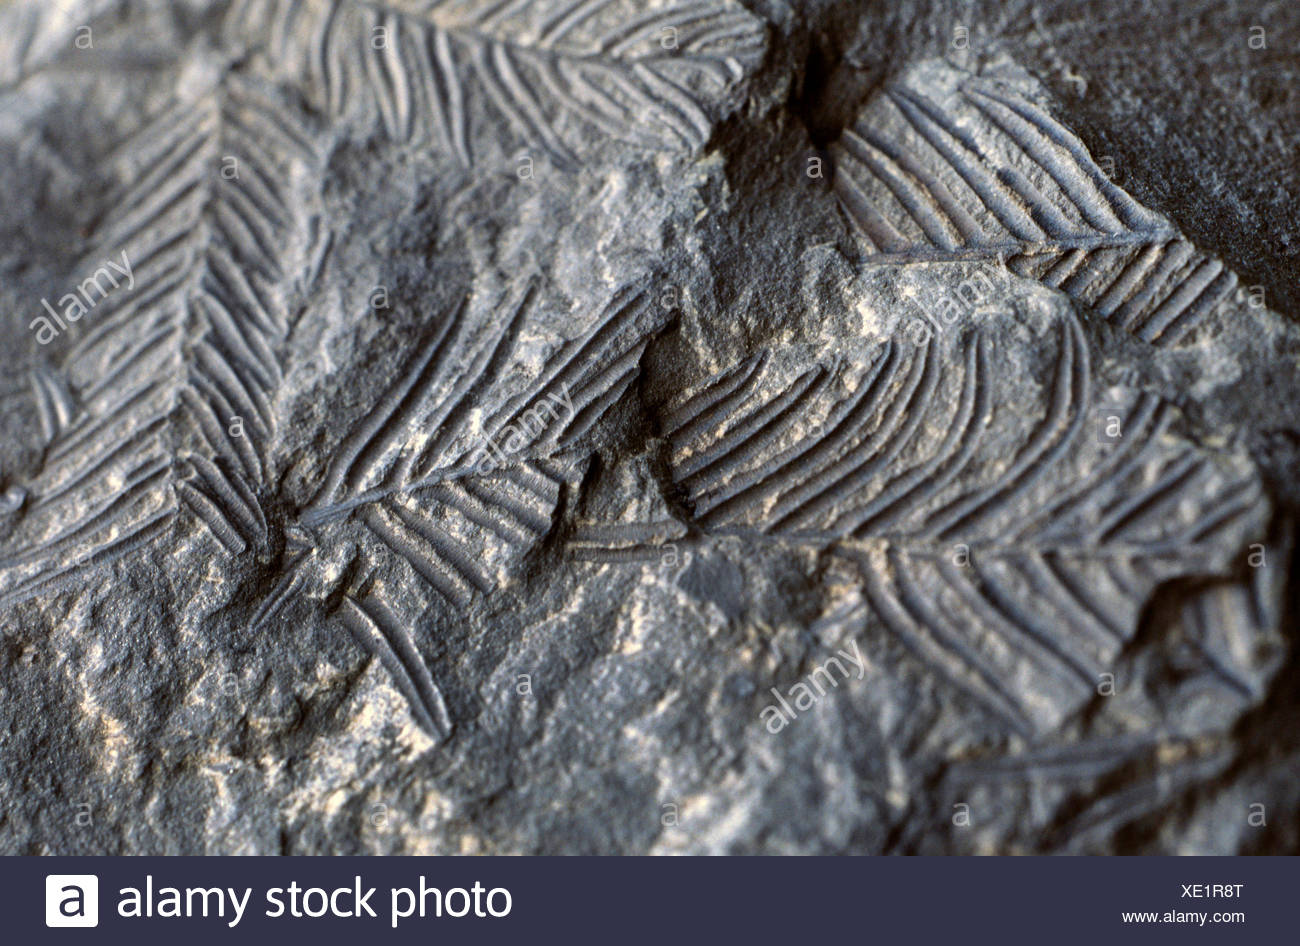 Alethopteris, fossile seed fern in shale from Carboniferous - Stock Image